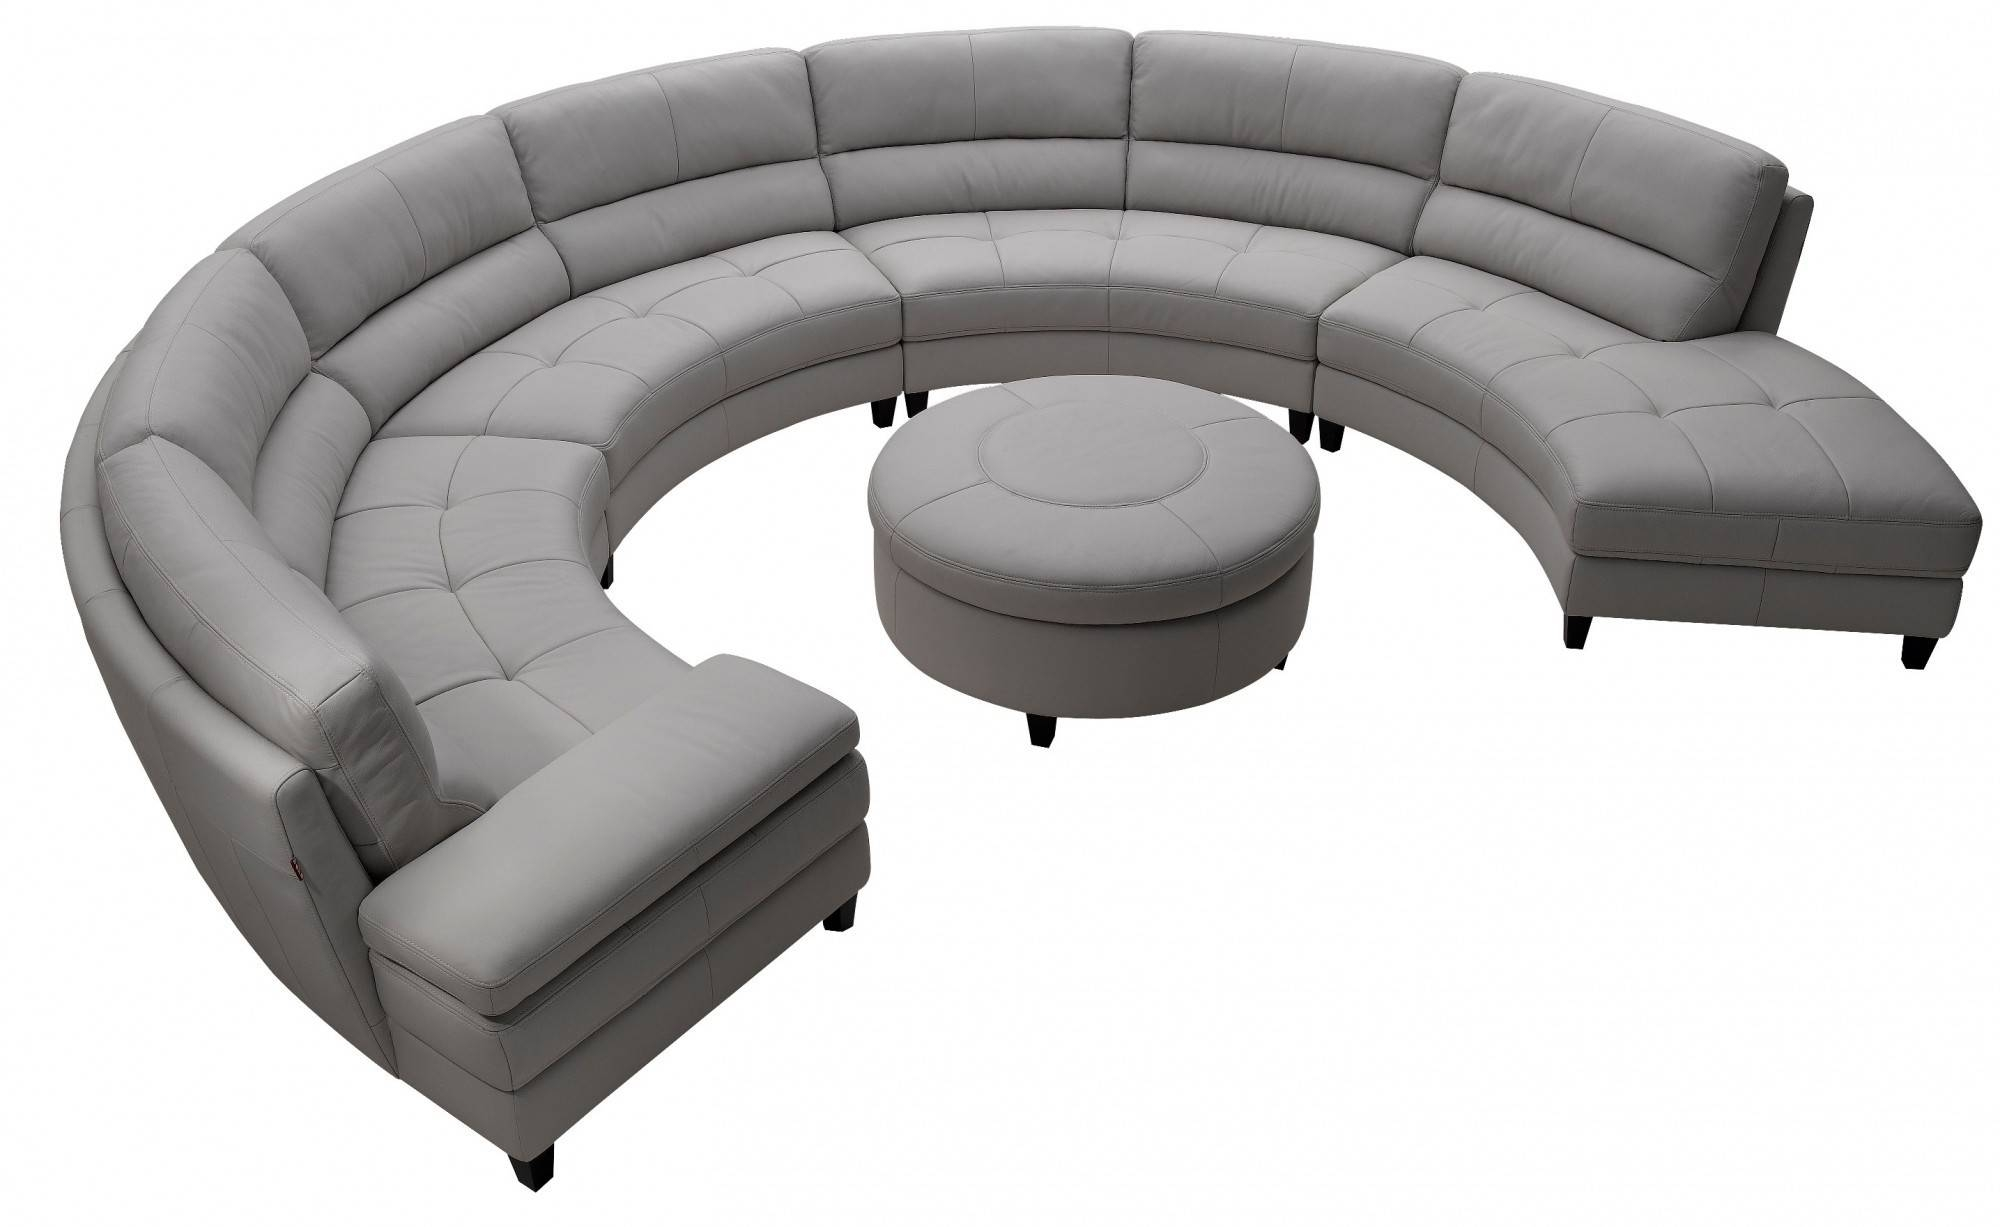 Circle Chaise The Best Round Sofas